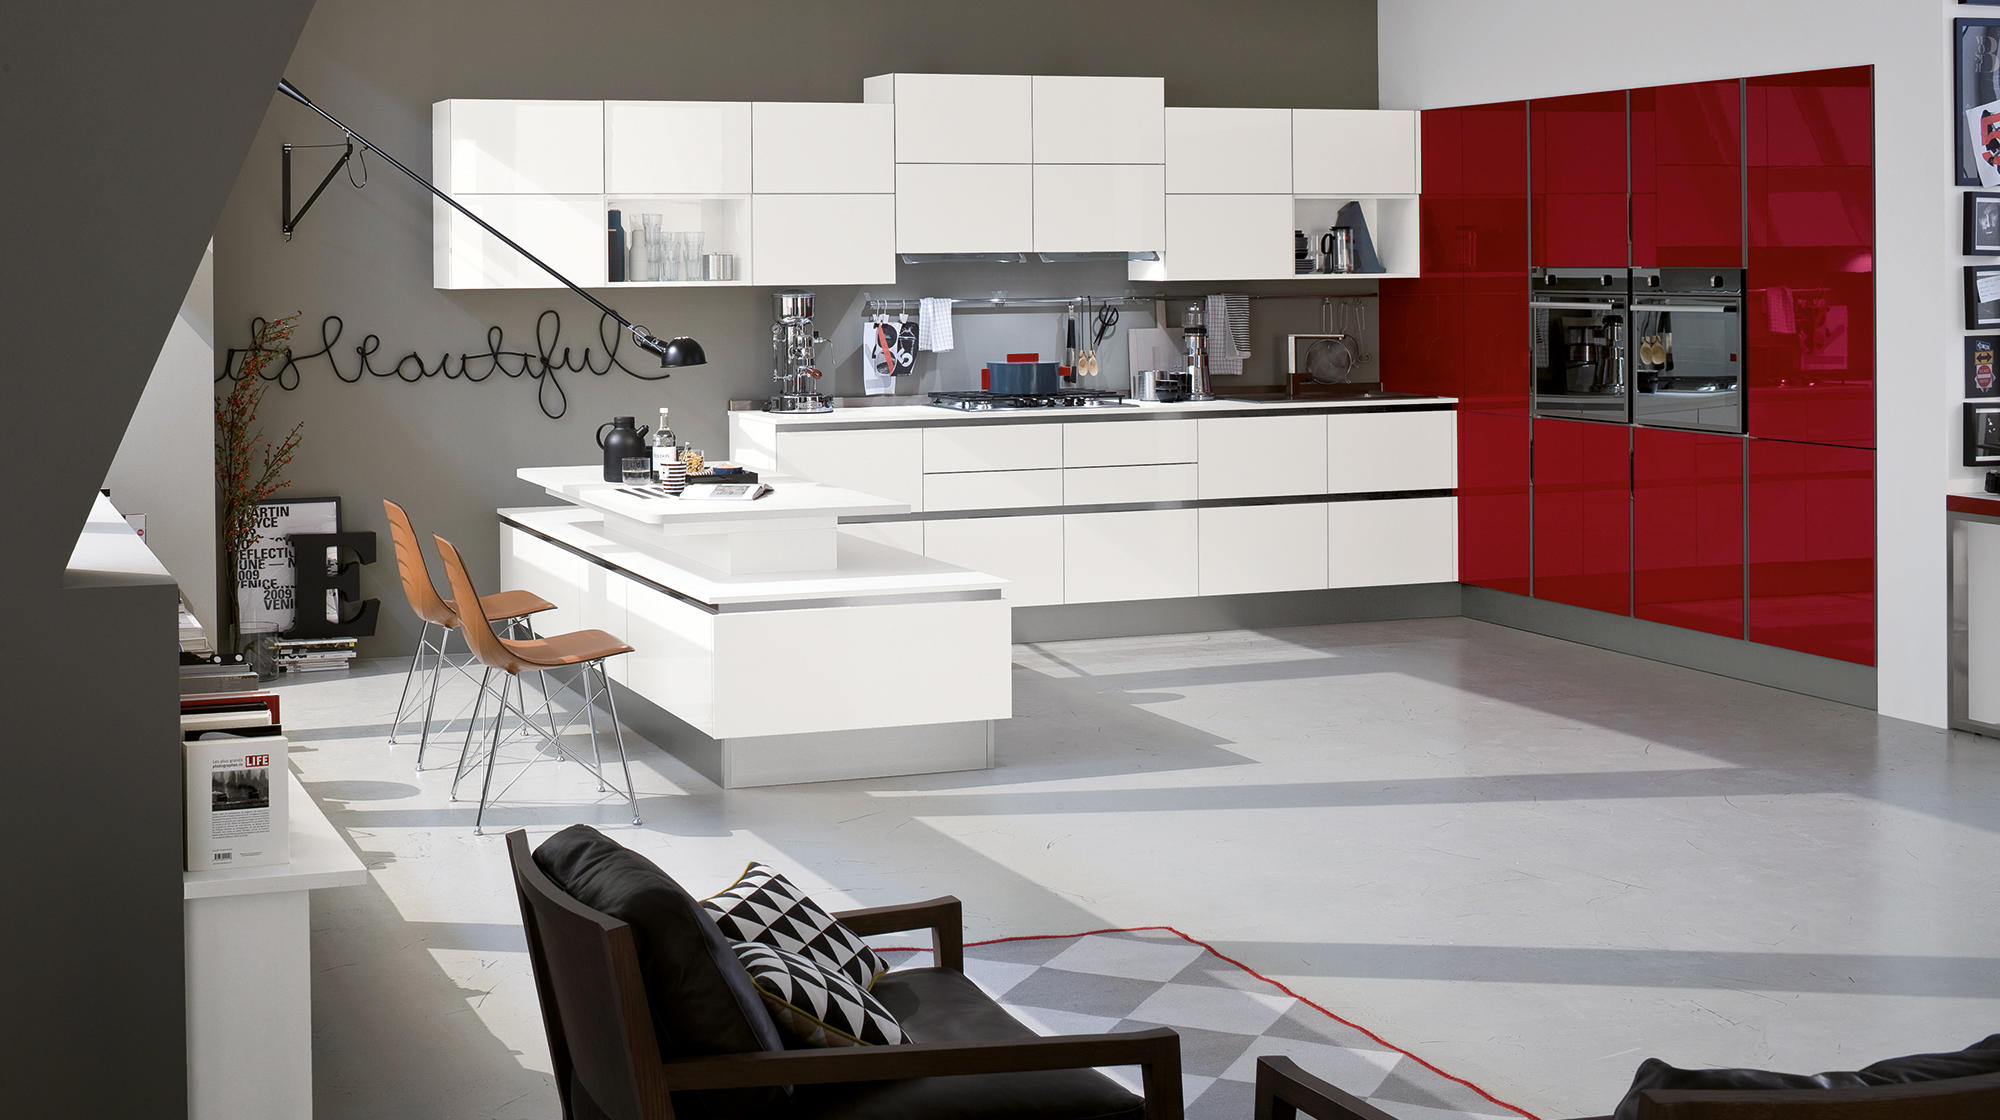 Comprex cucine opinioni briel space cucina lavagna ideas with comprex cucine opinioni view - Opinioni veneta cucine ...